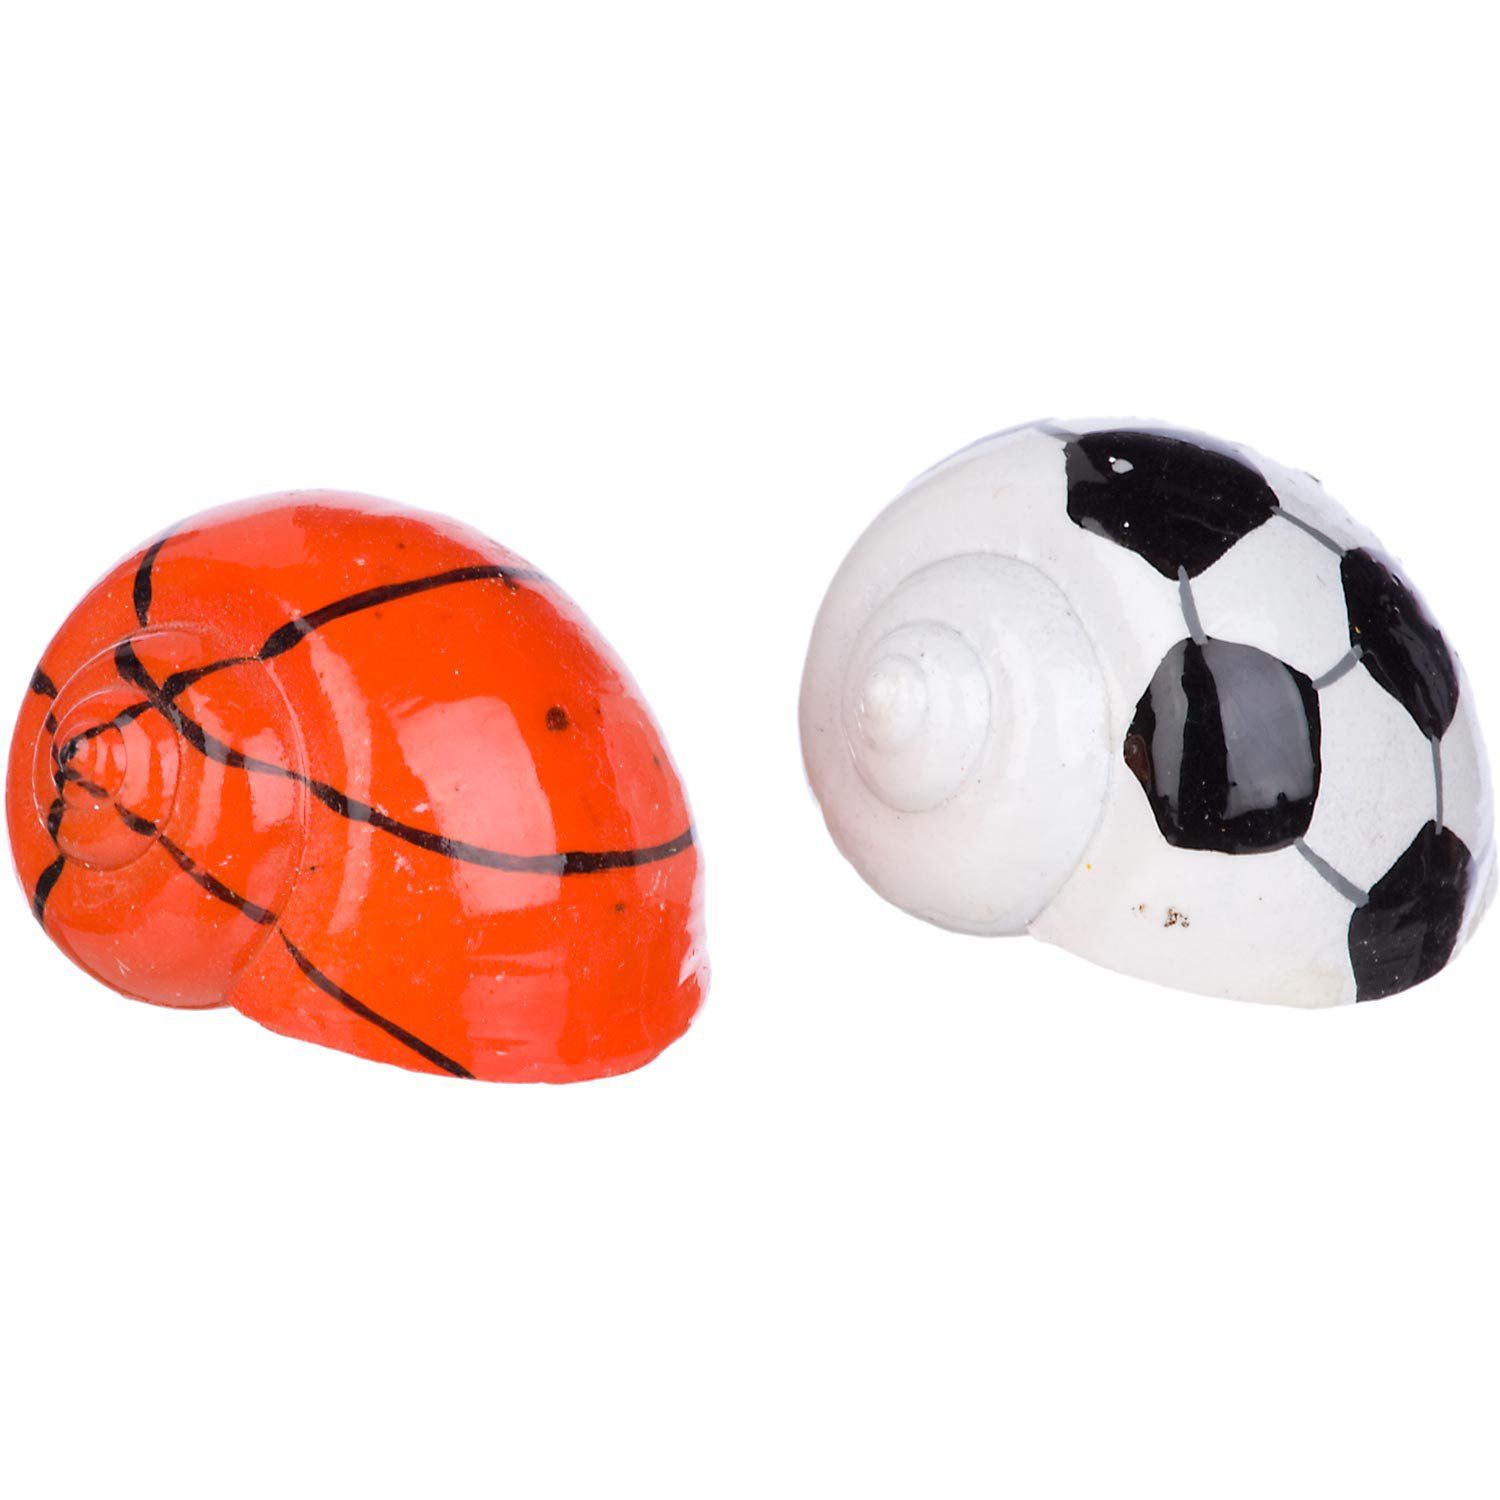 Image of Conceptual Creations Hermit Crab Sports Shells, Pack of 2 shells